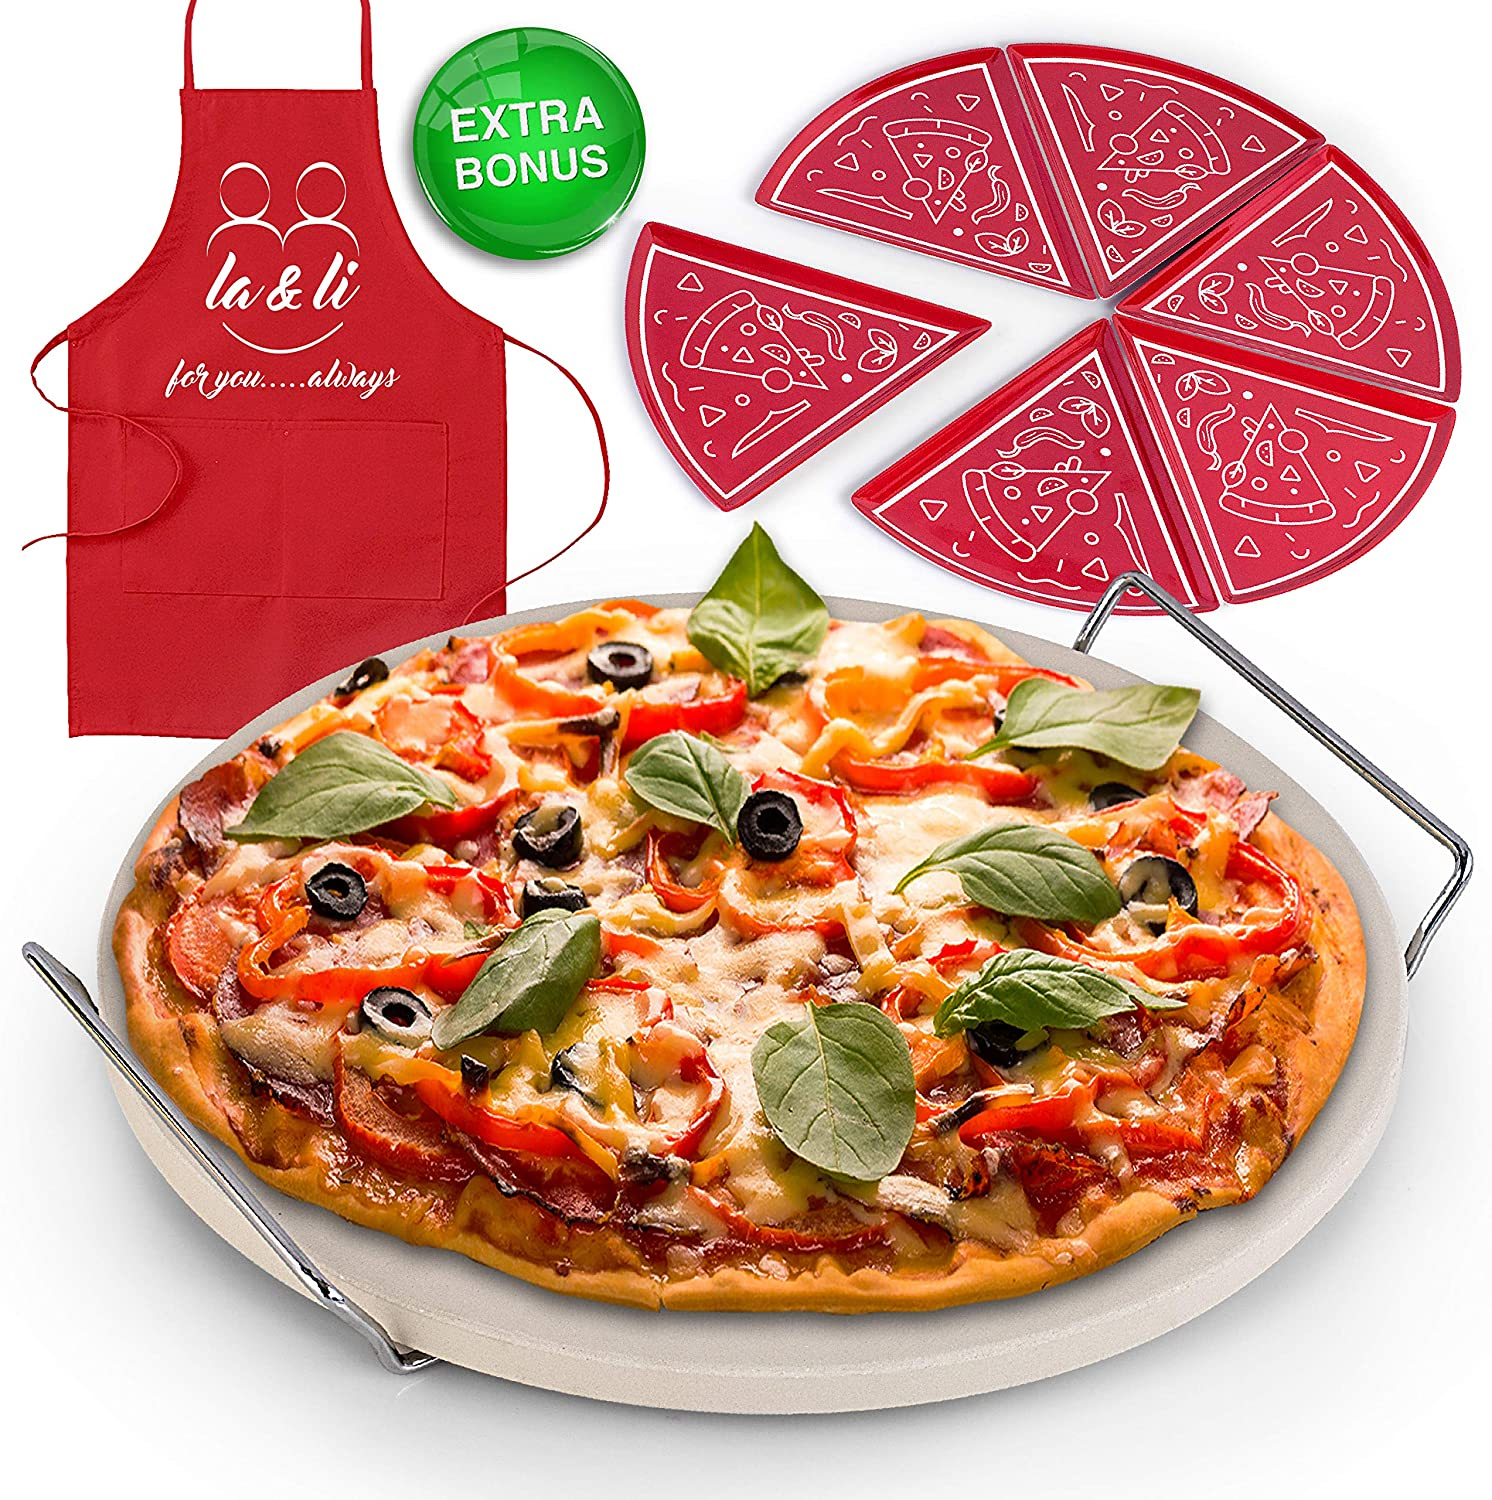 La & Li Premium Pizza Stone Set: Large 15 Inch Round Plate for Oven or BBQ Grill, Multipurpose Rack Stand with Handles, 6 Pizza-Pie Plates and Apron